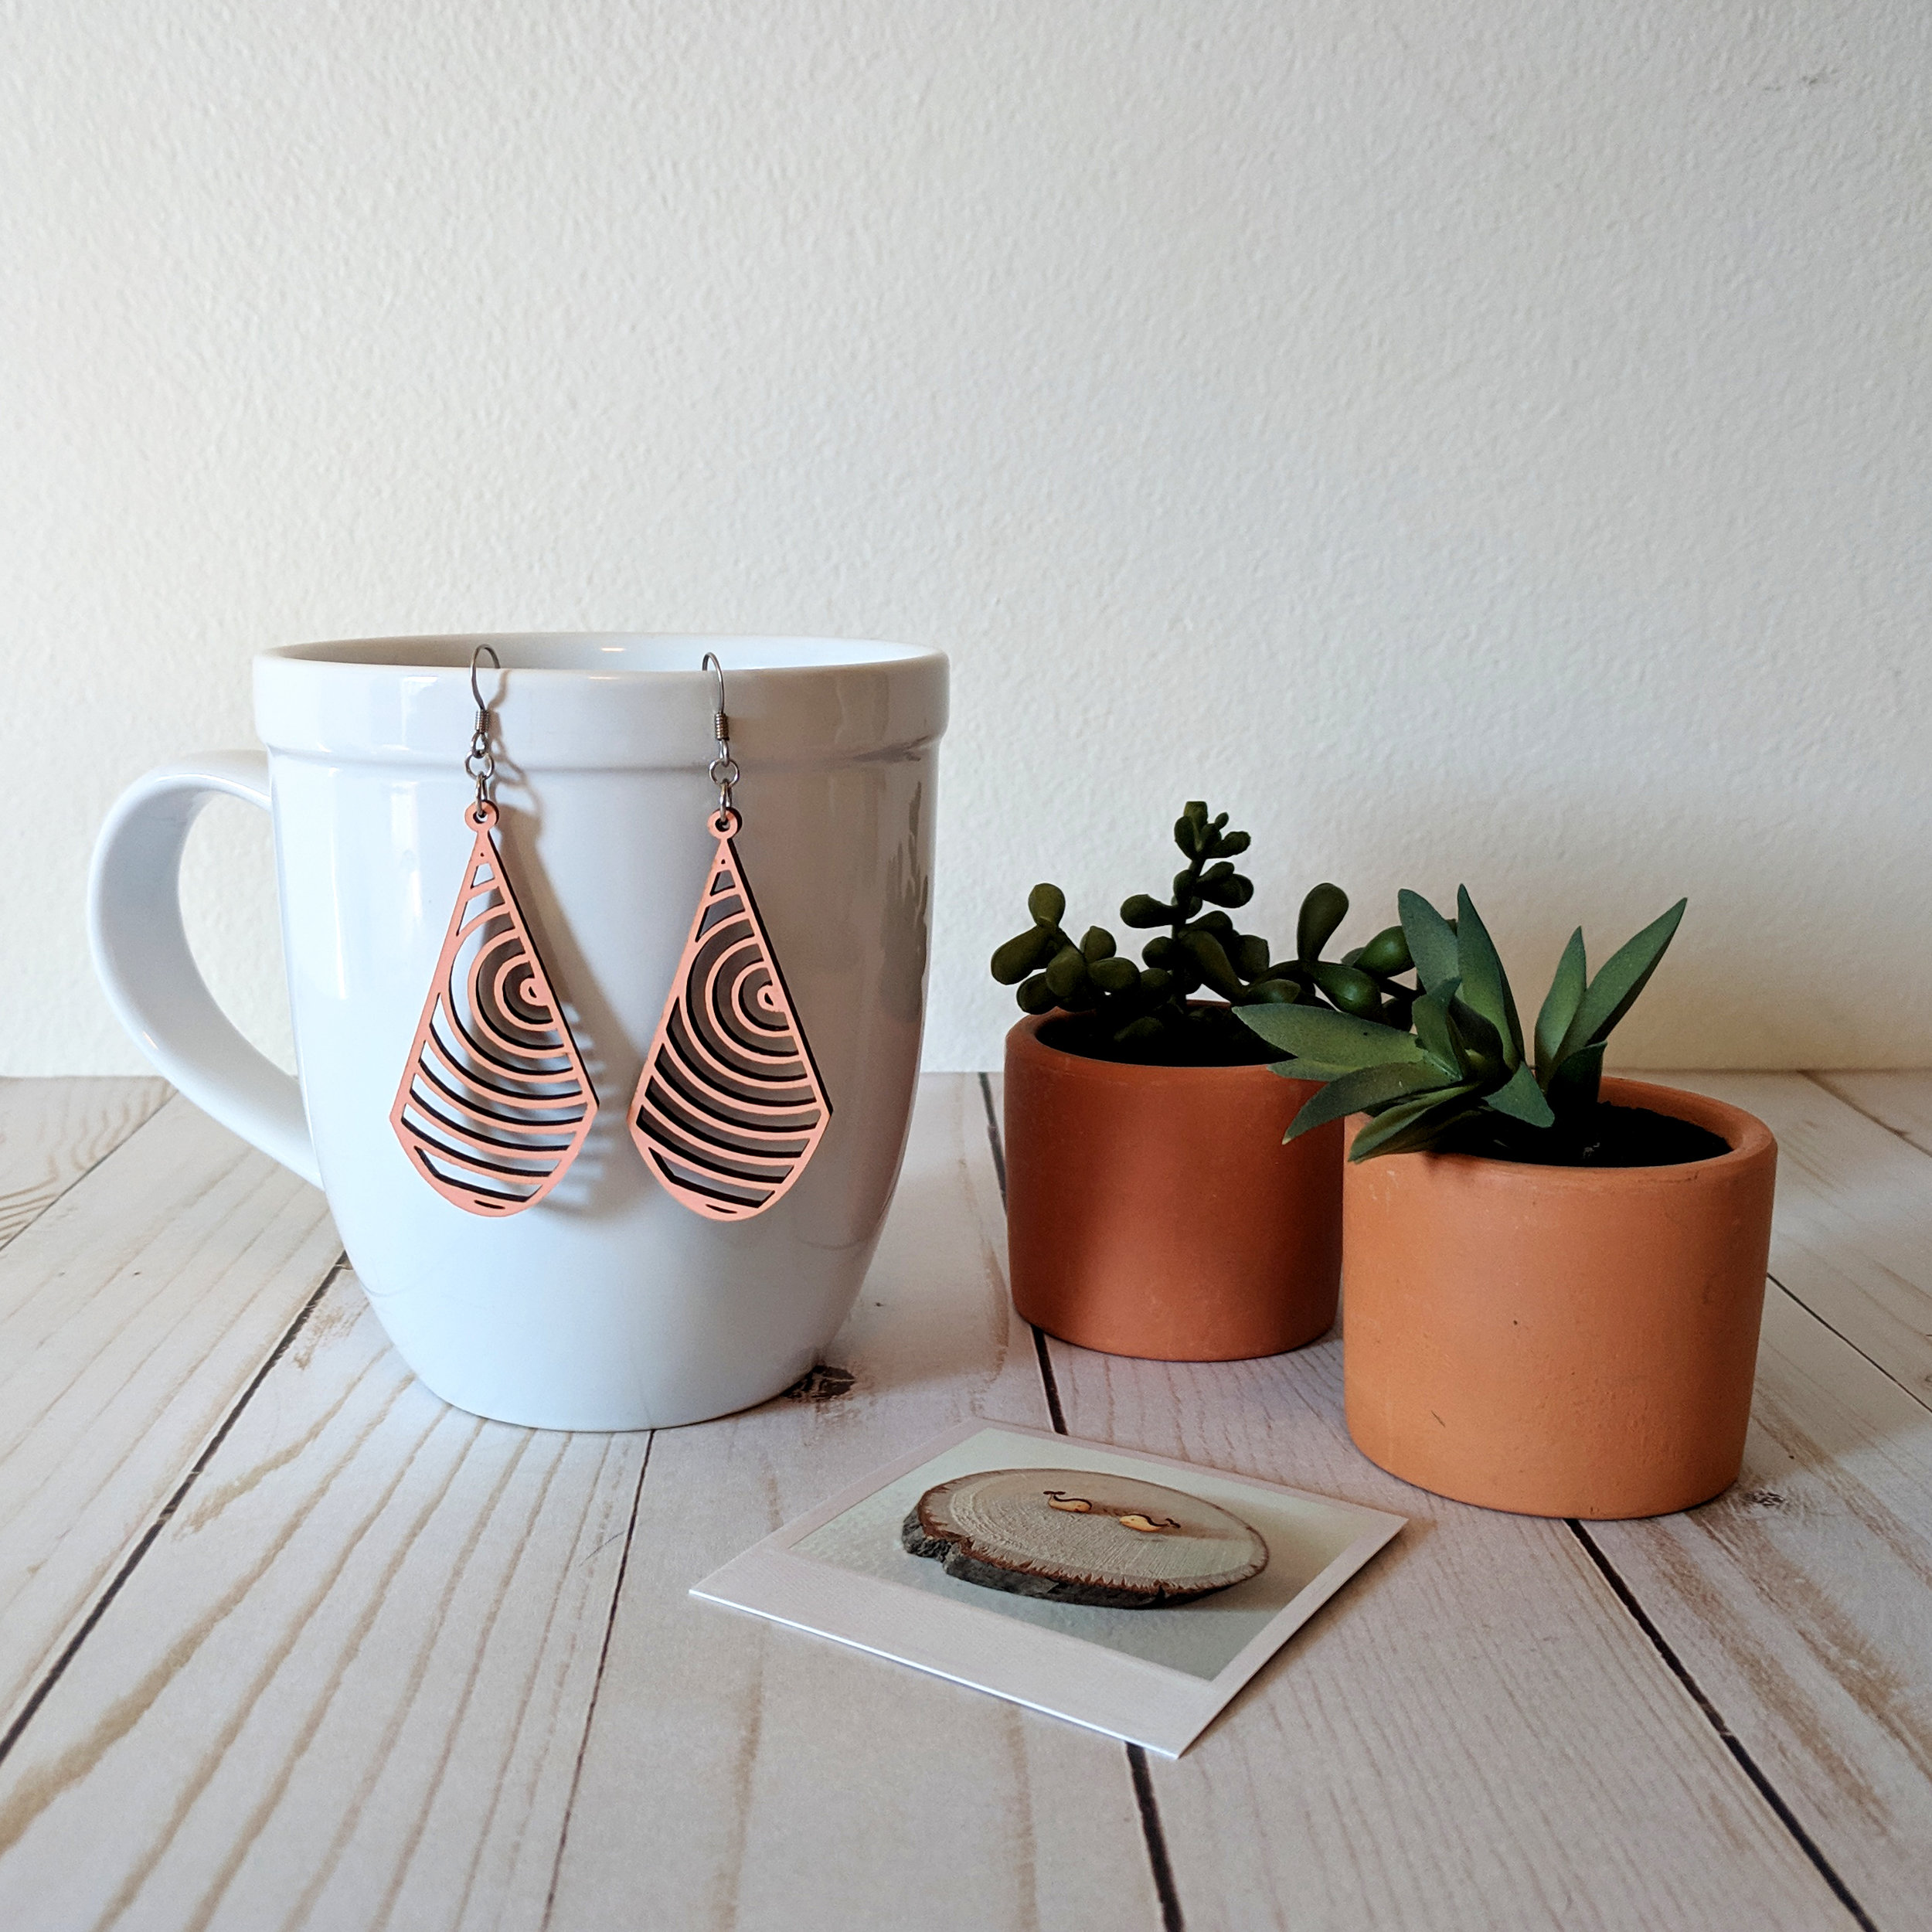 concentric circle earrings cup succulents.jpg